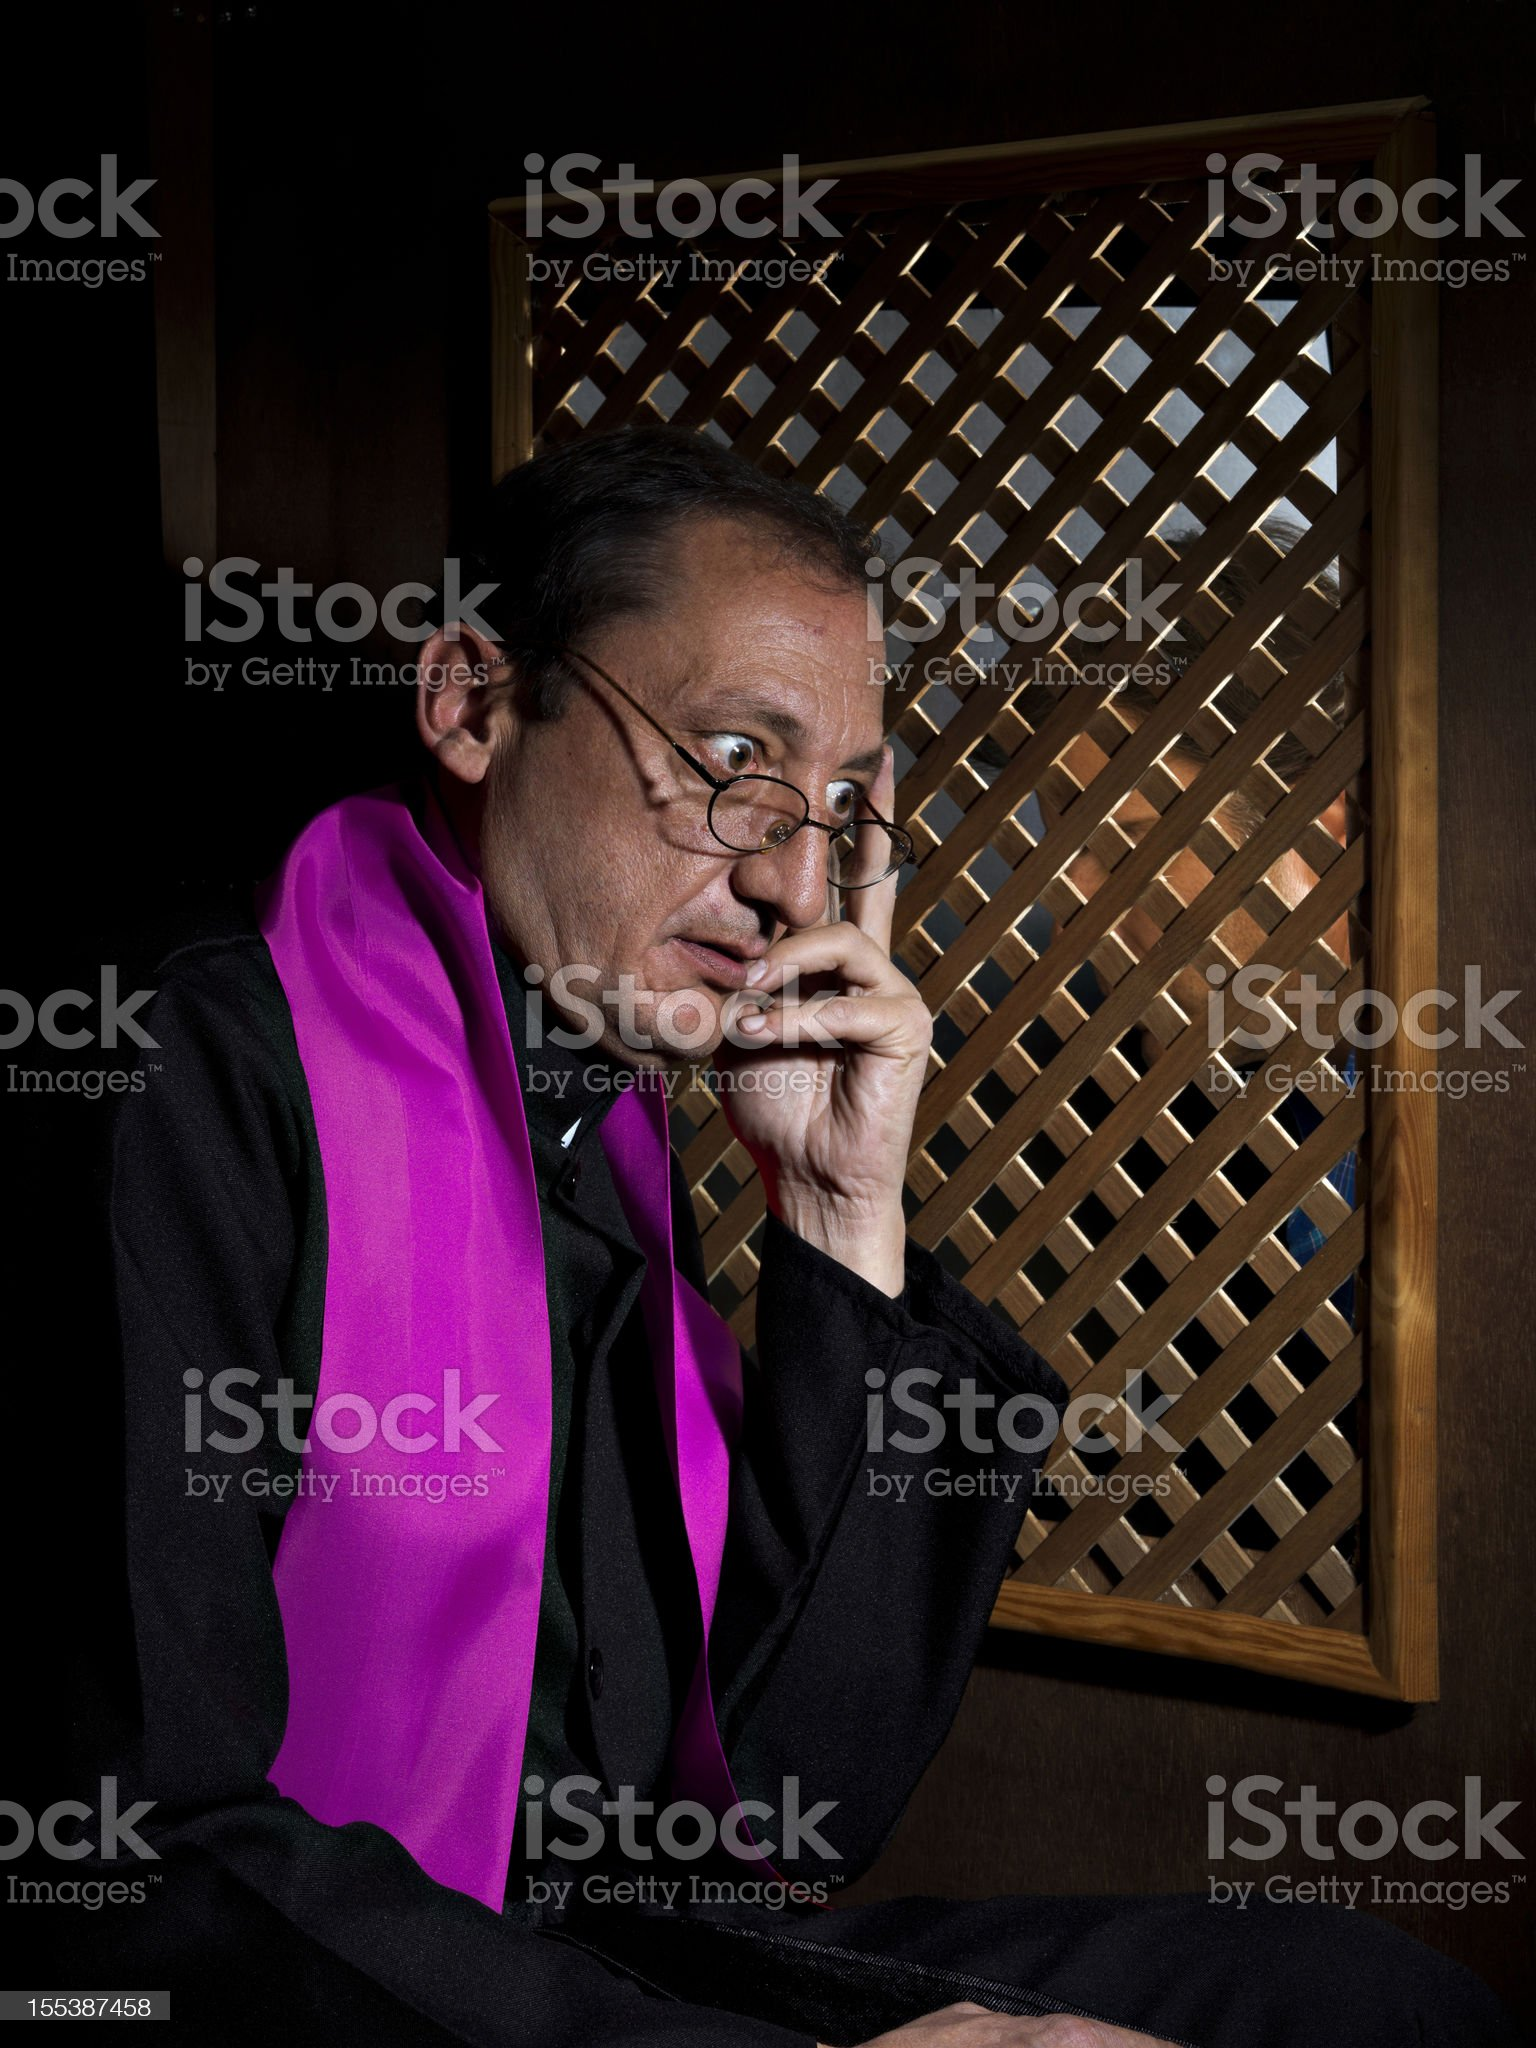 Confession royalty-free stock photo